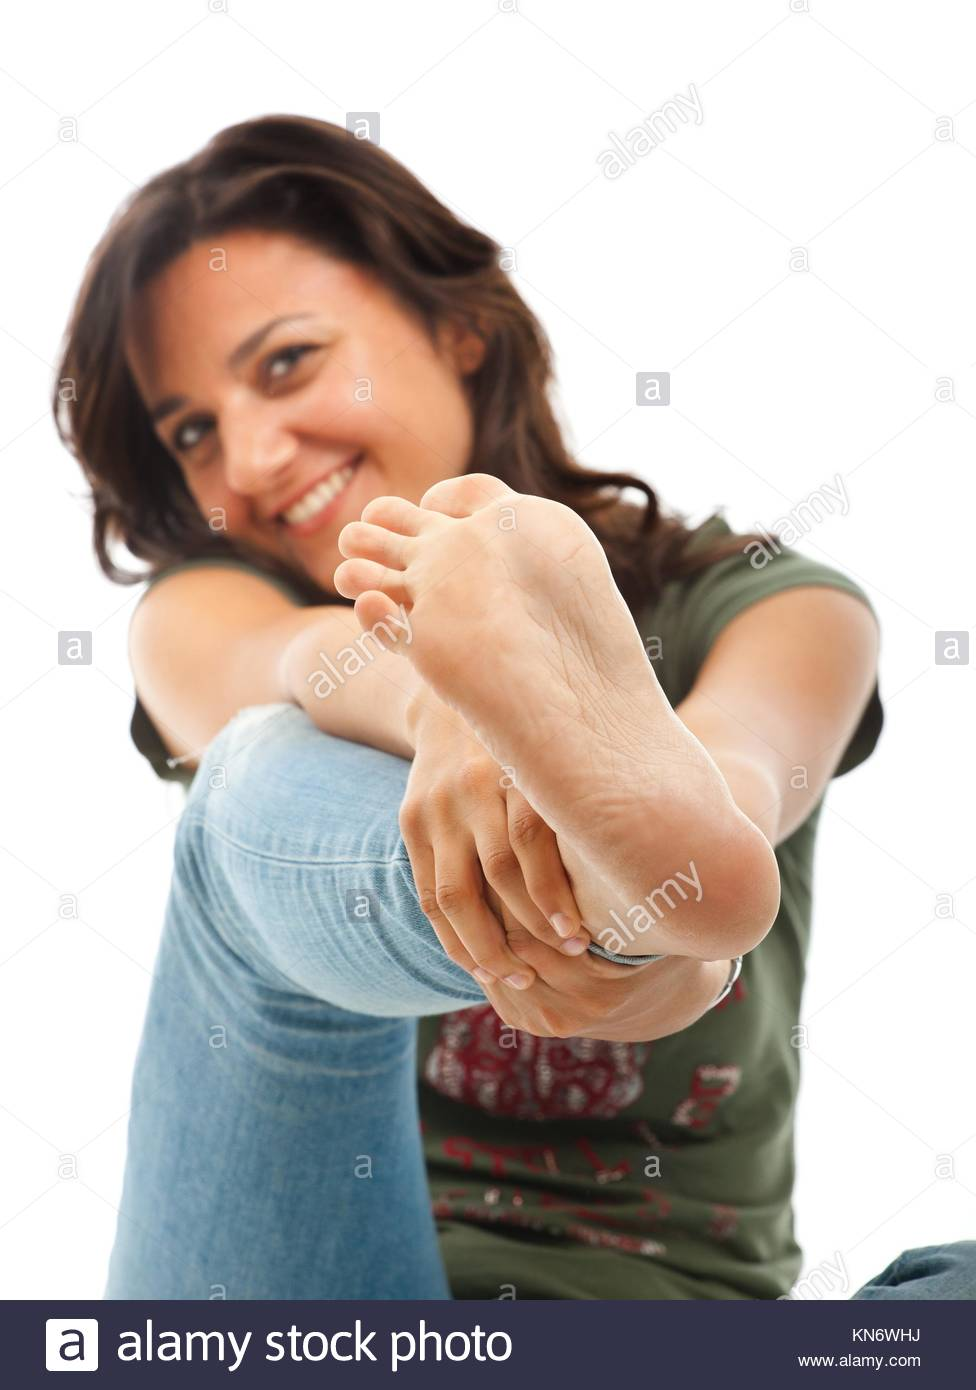 Smiling girl in jeans showing the sole of the foot. - Stock Image